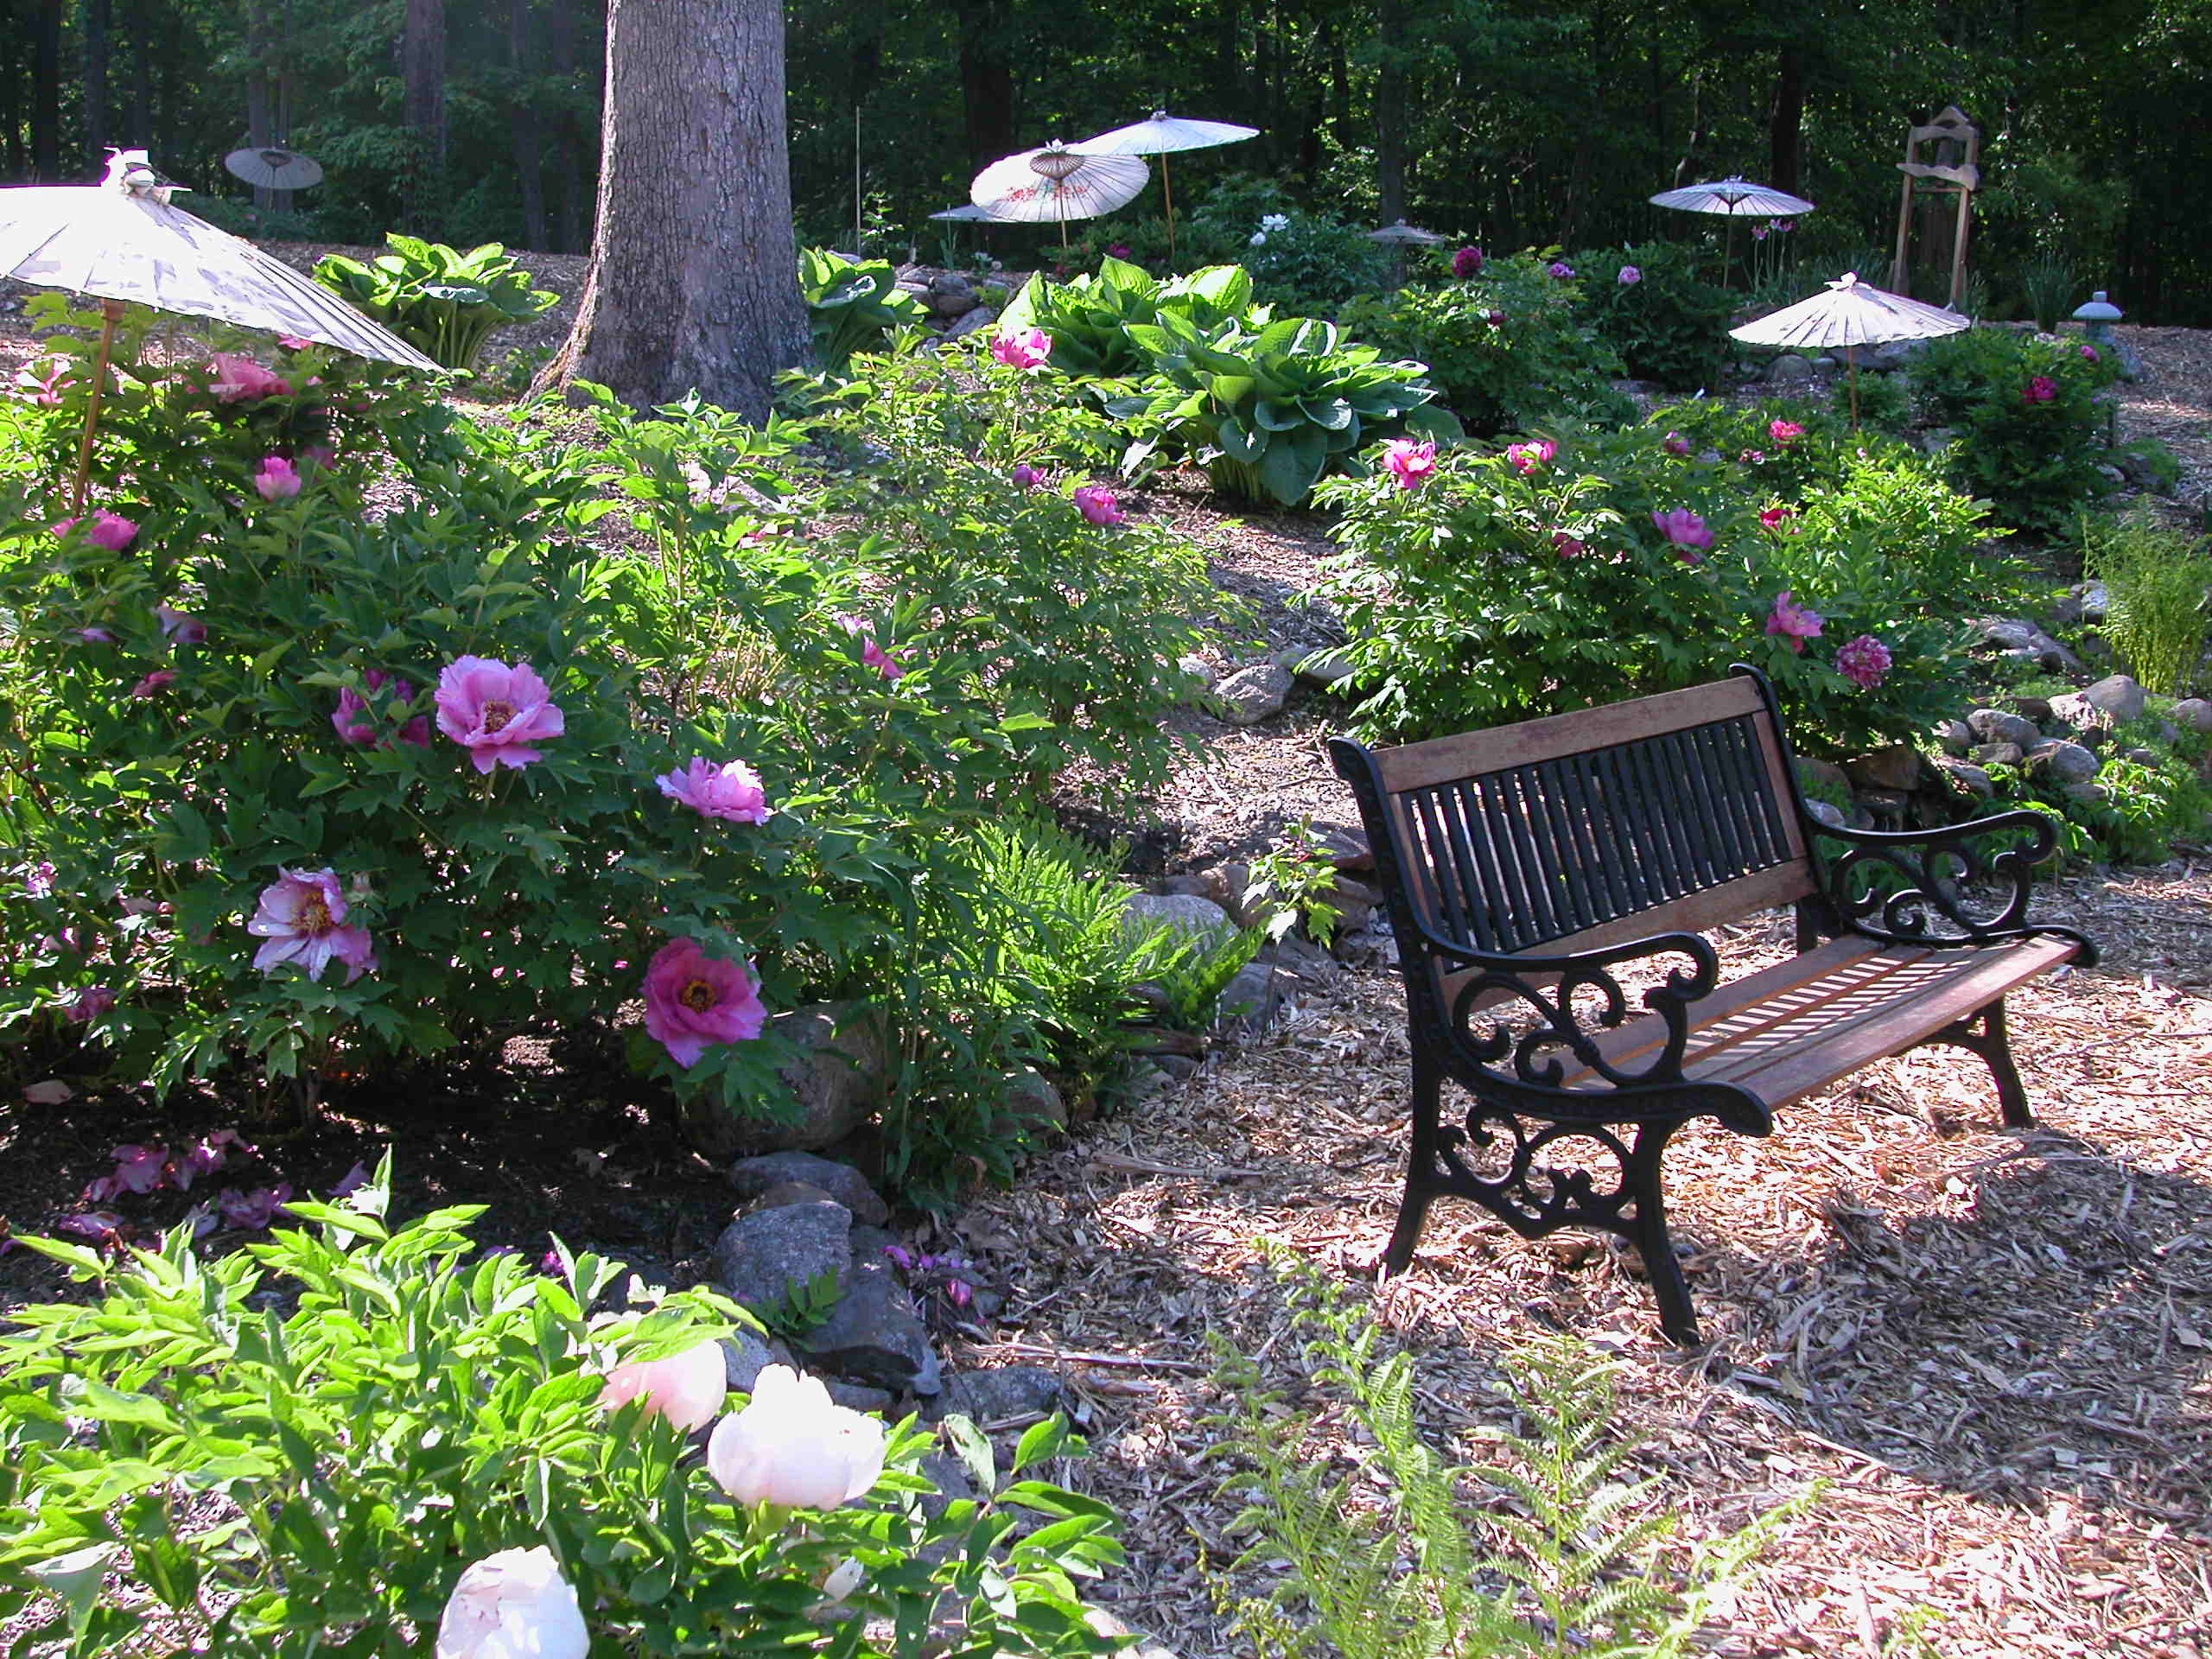 Umbrellas shade the glorious peony blossoms at Cricket Hill Garden in Thomaston, CT